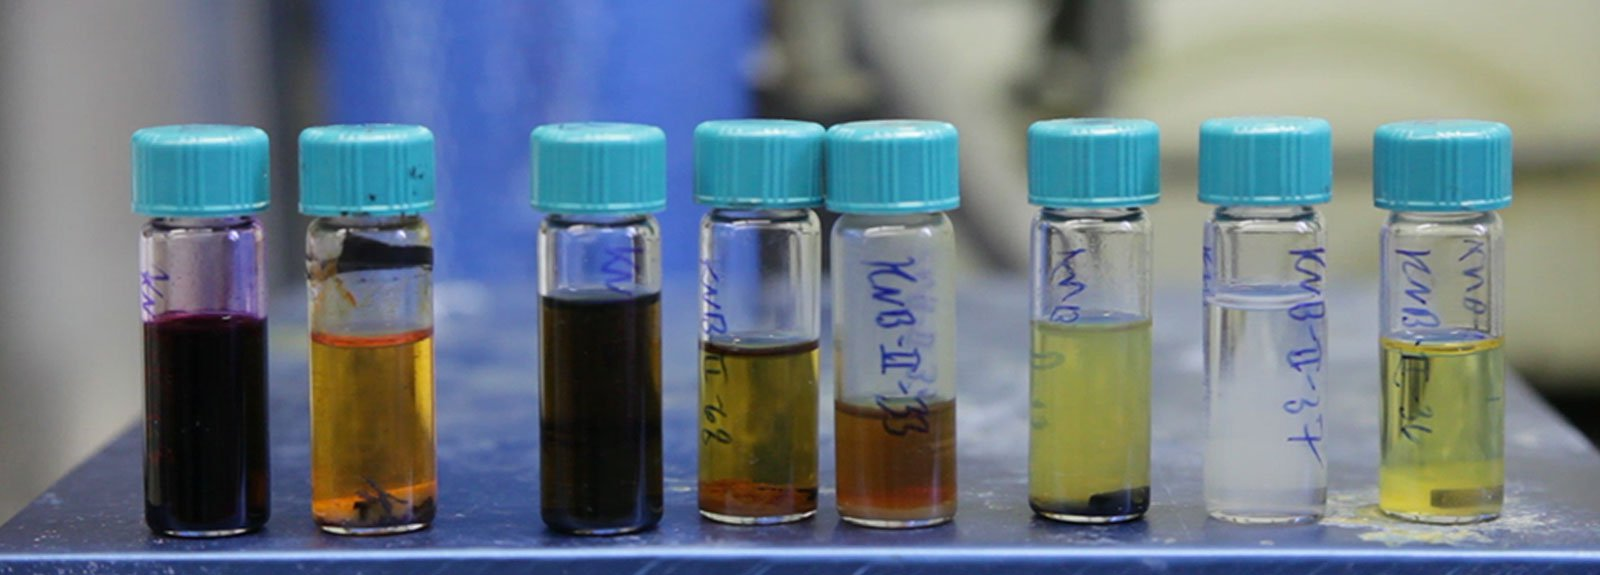 Biofuel Samples in Vials